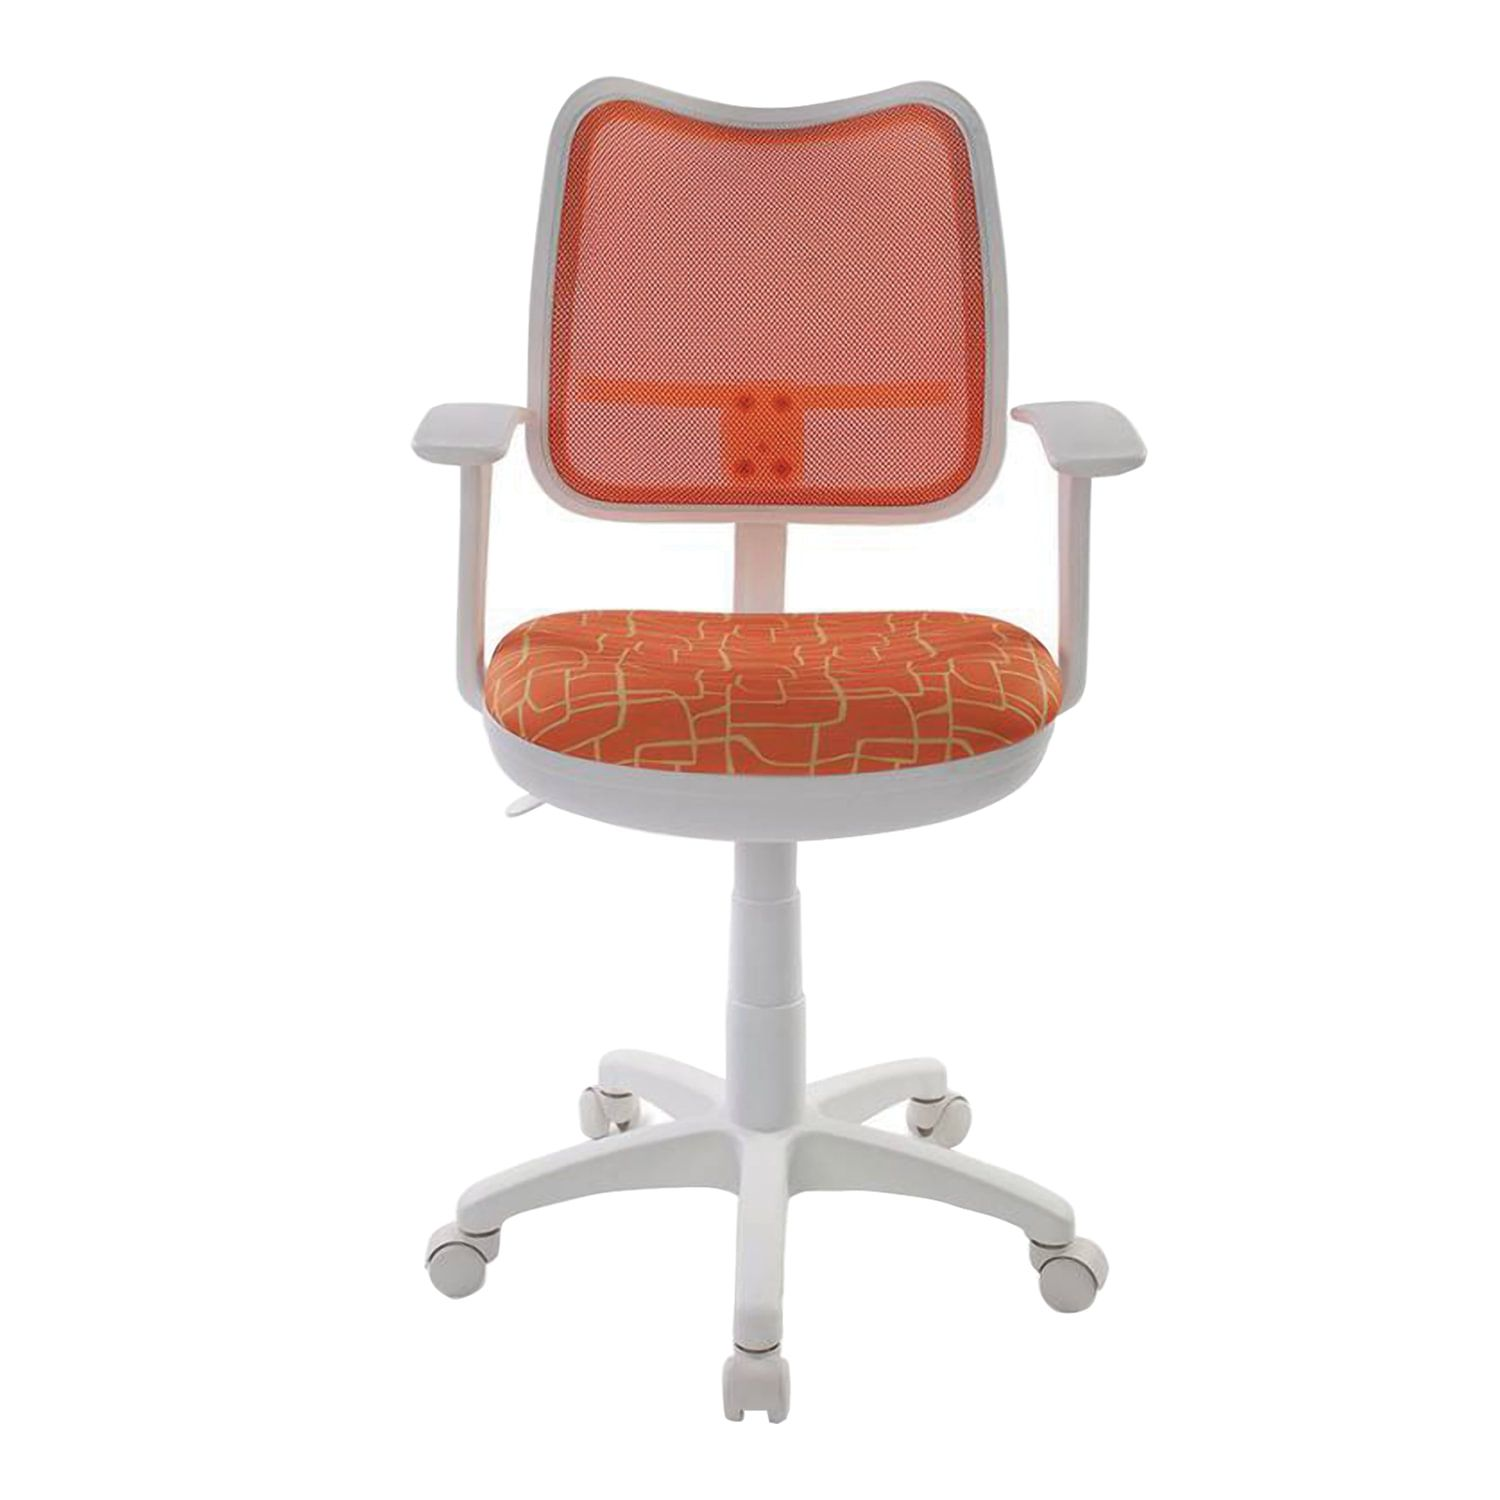 Armchair CH-W797 / OR / GIRAFFE with armrests, orange with a pattern, white plastic